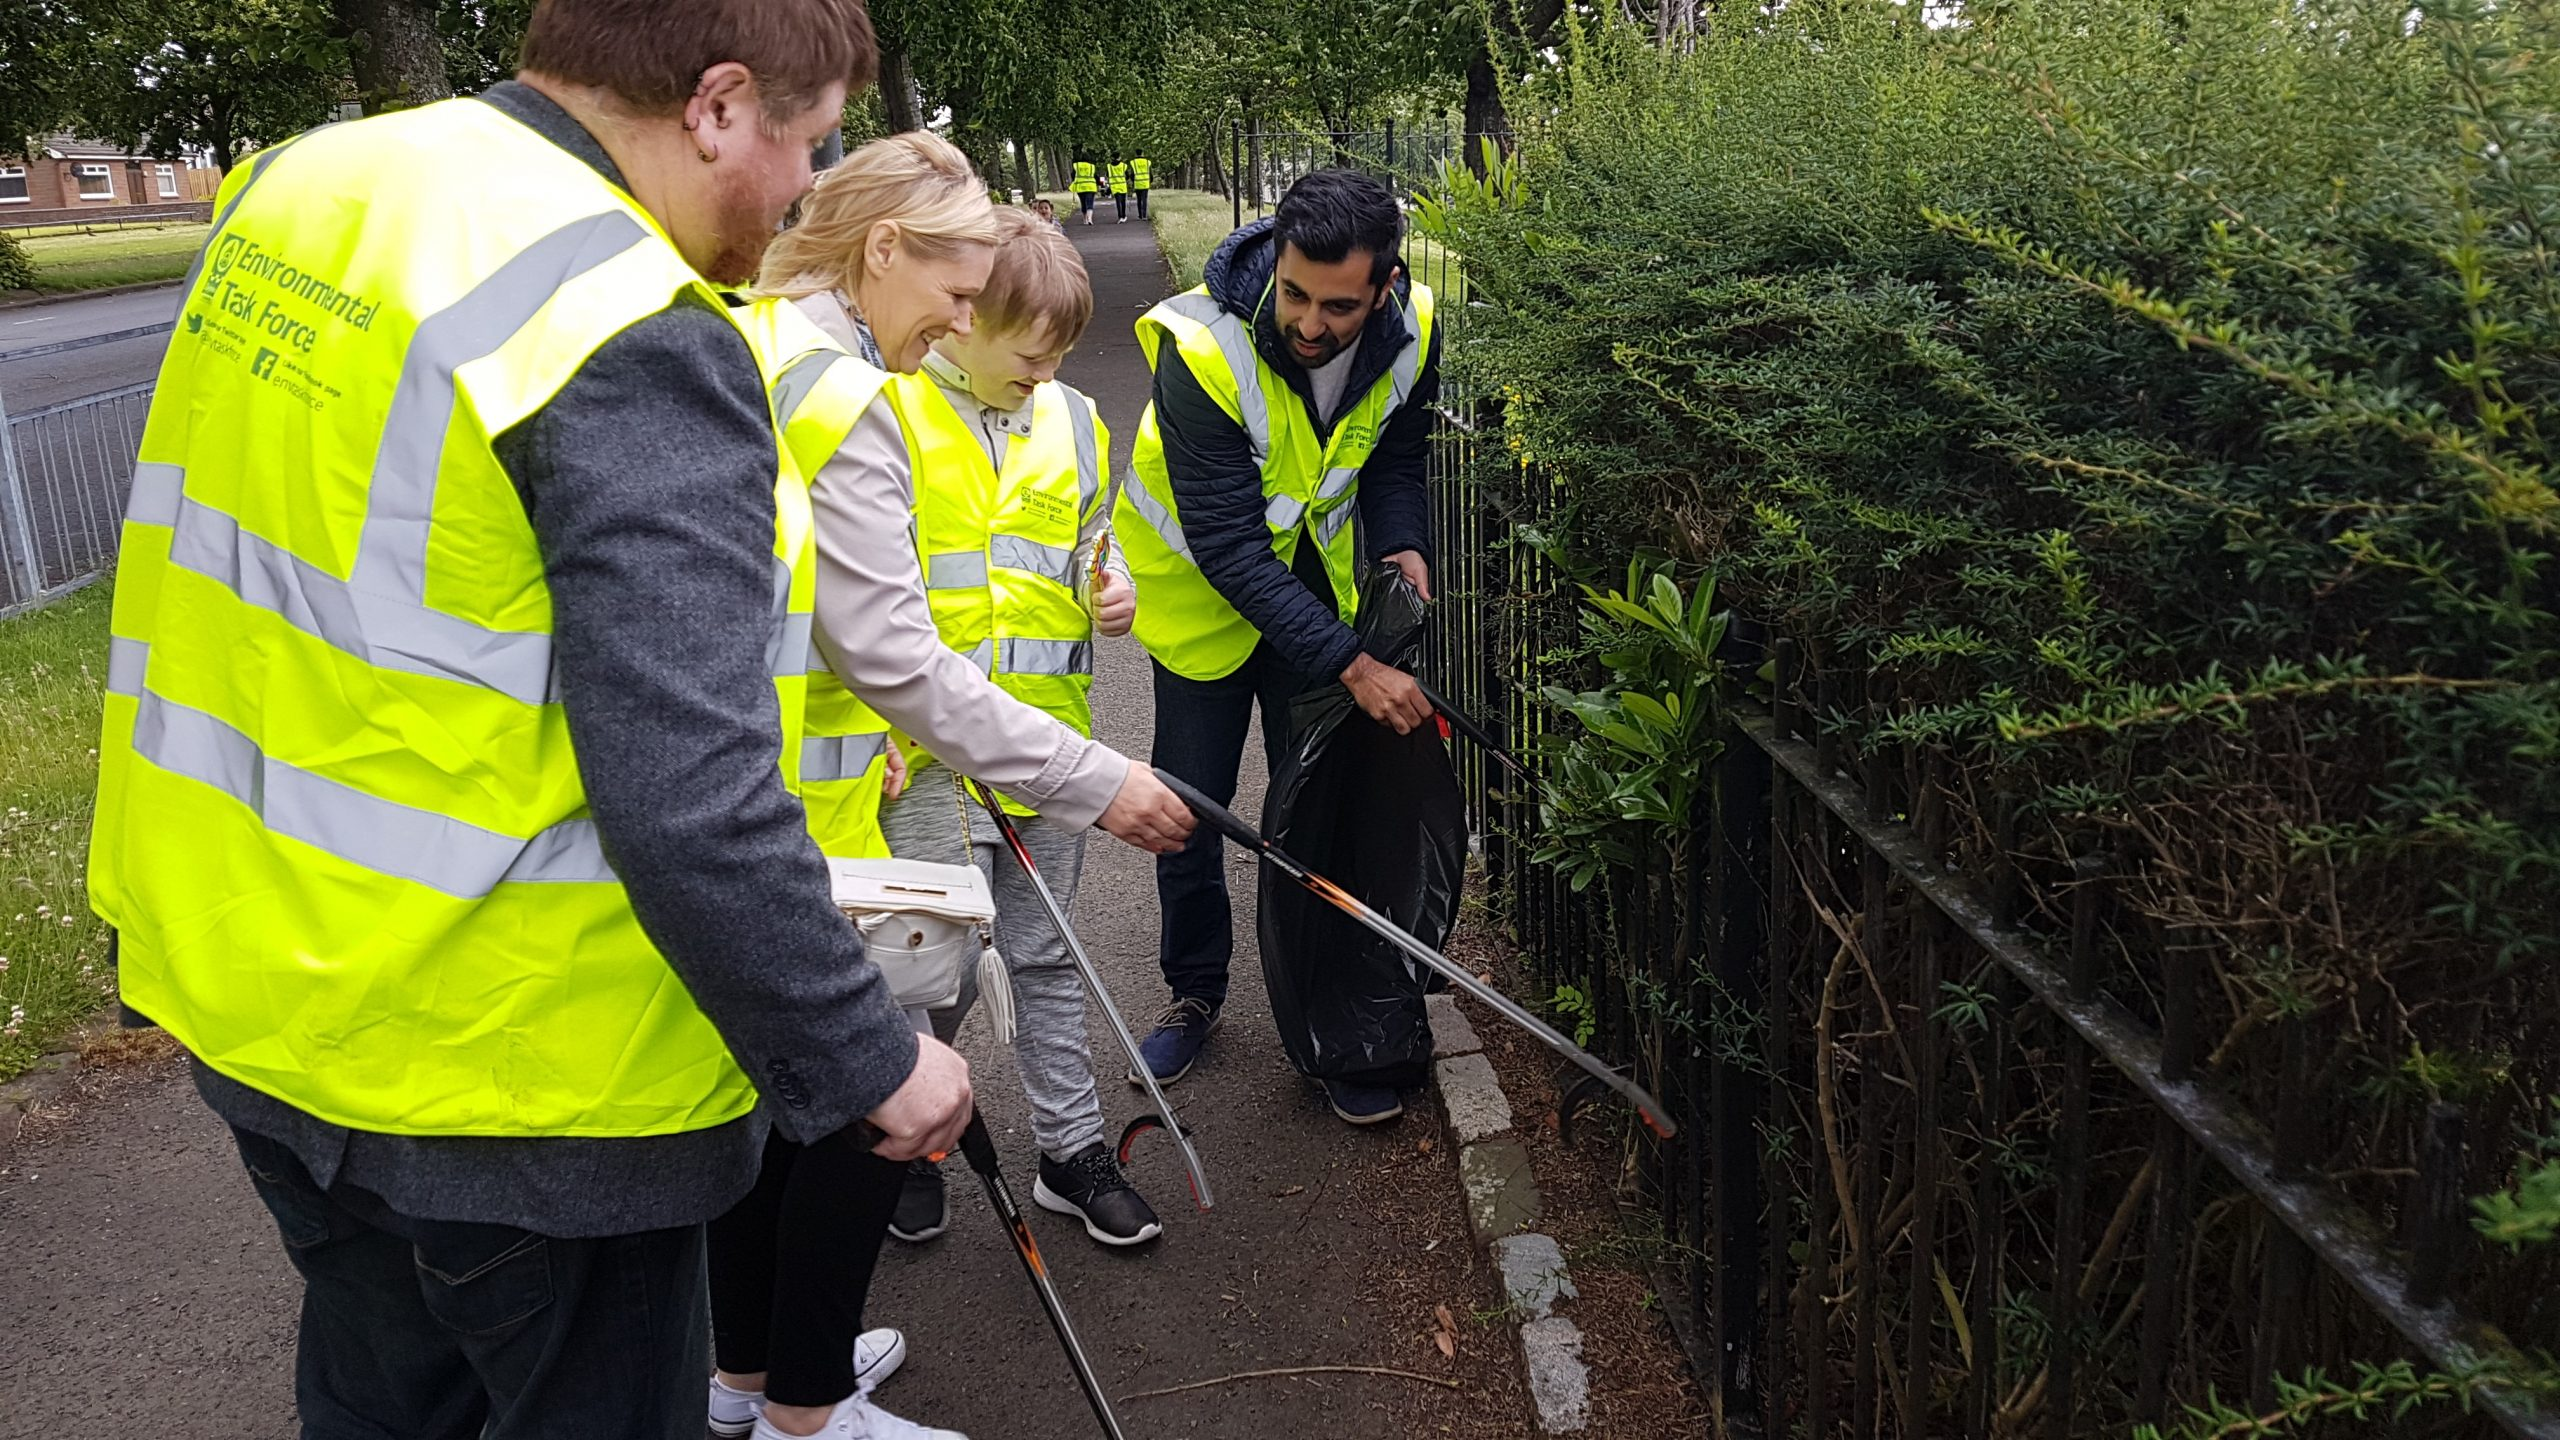 Humza Yousaf helping with the Mosspark clean up